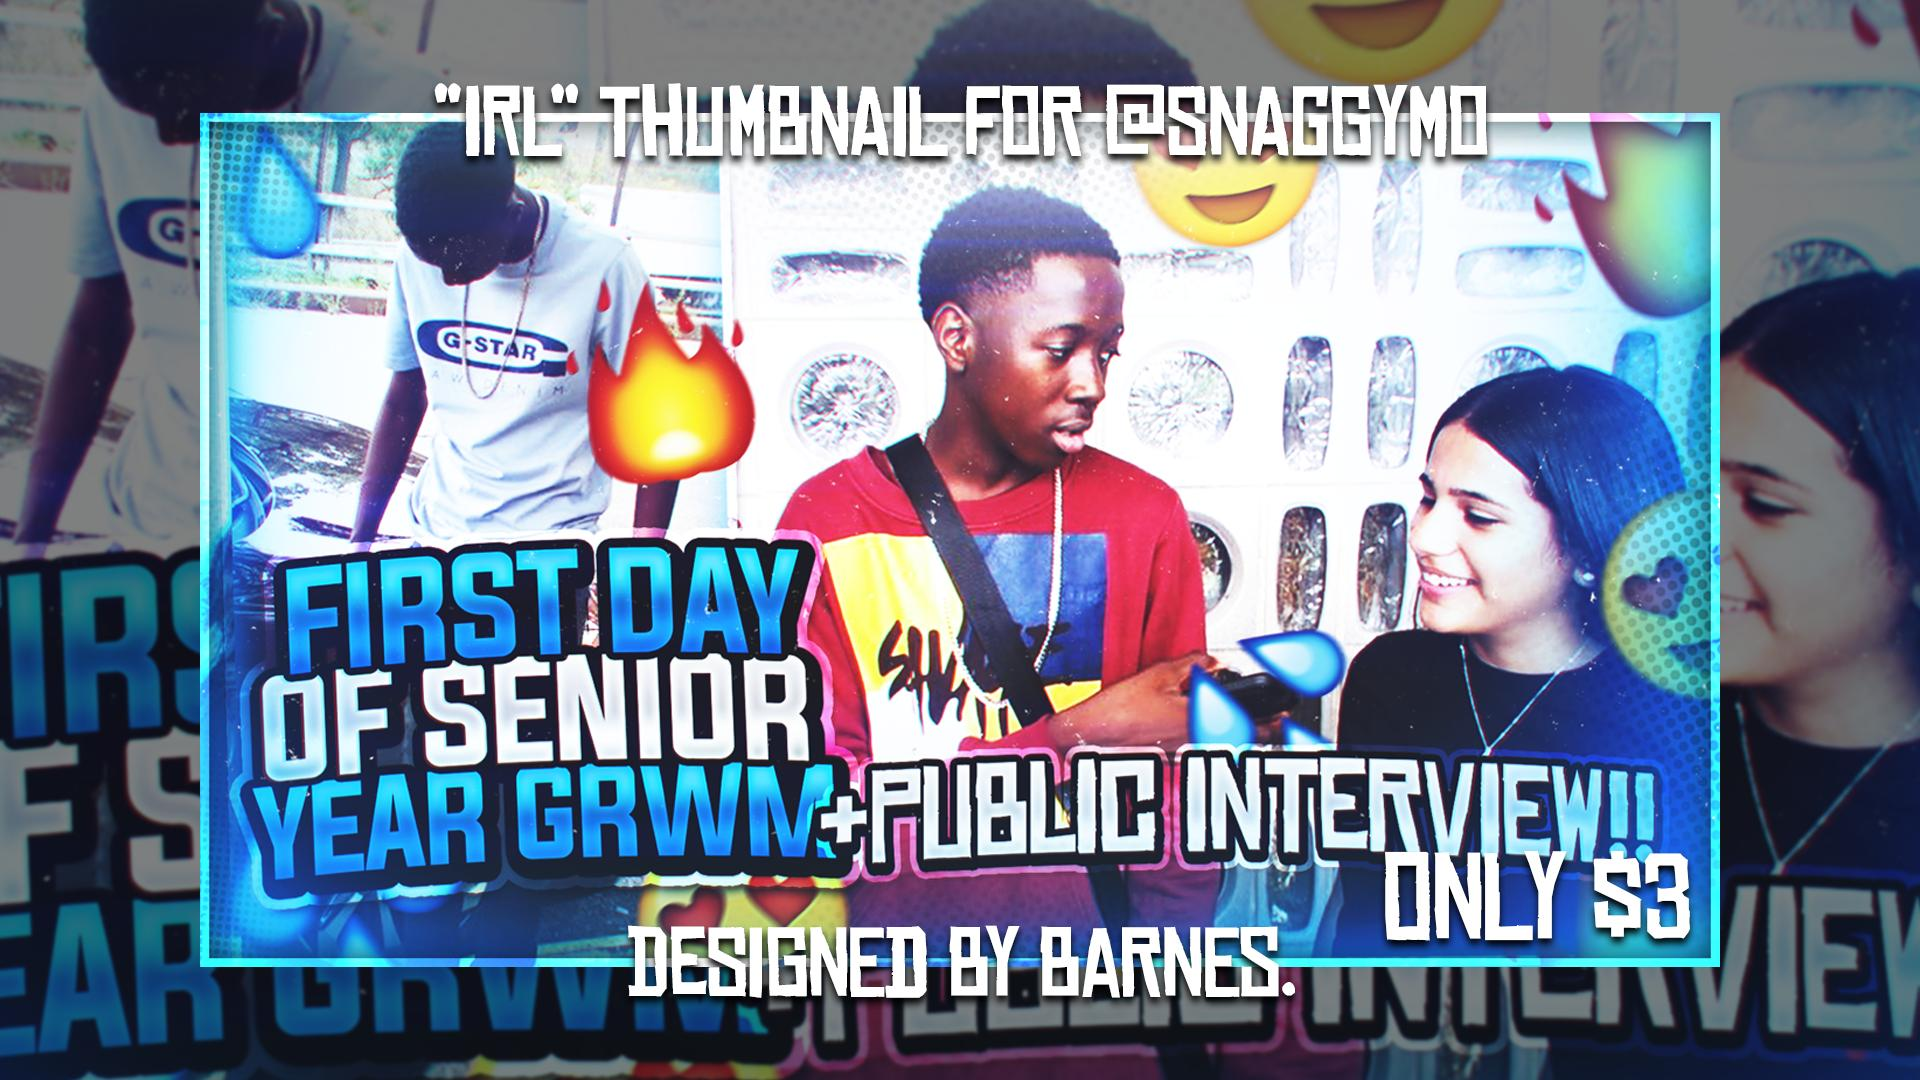 ʙᴀʀɴᴇs 2 0k On Twitter Banger Irl Thumbnail Made For Snaggymo Please Share Like And Retweet 3 If You Want A Thumbnail For Yourself They Cost Only 3 Grwm Firstdayofschool2019 Senioryear I post daily pictures on here. twitter